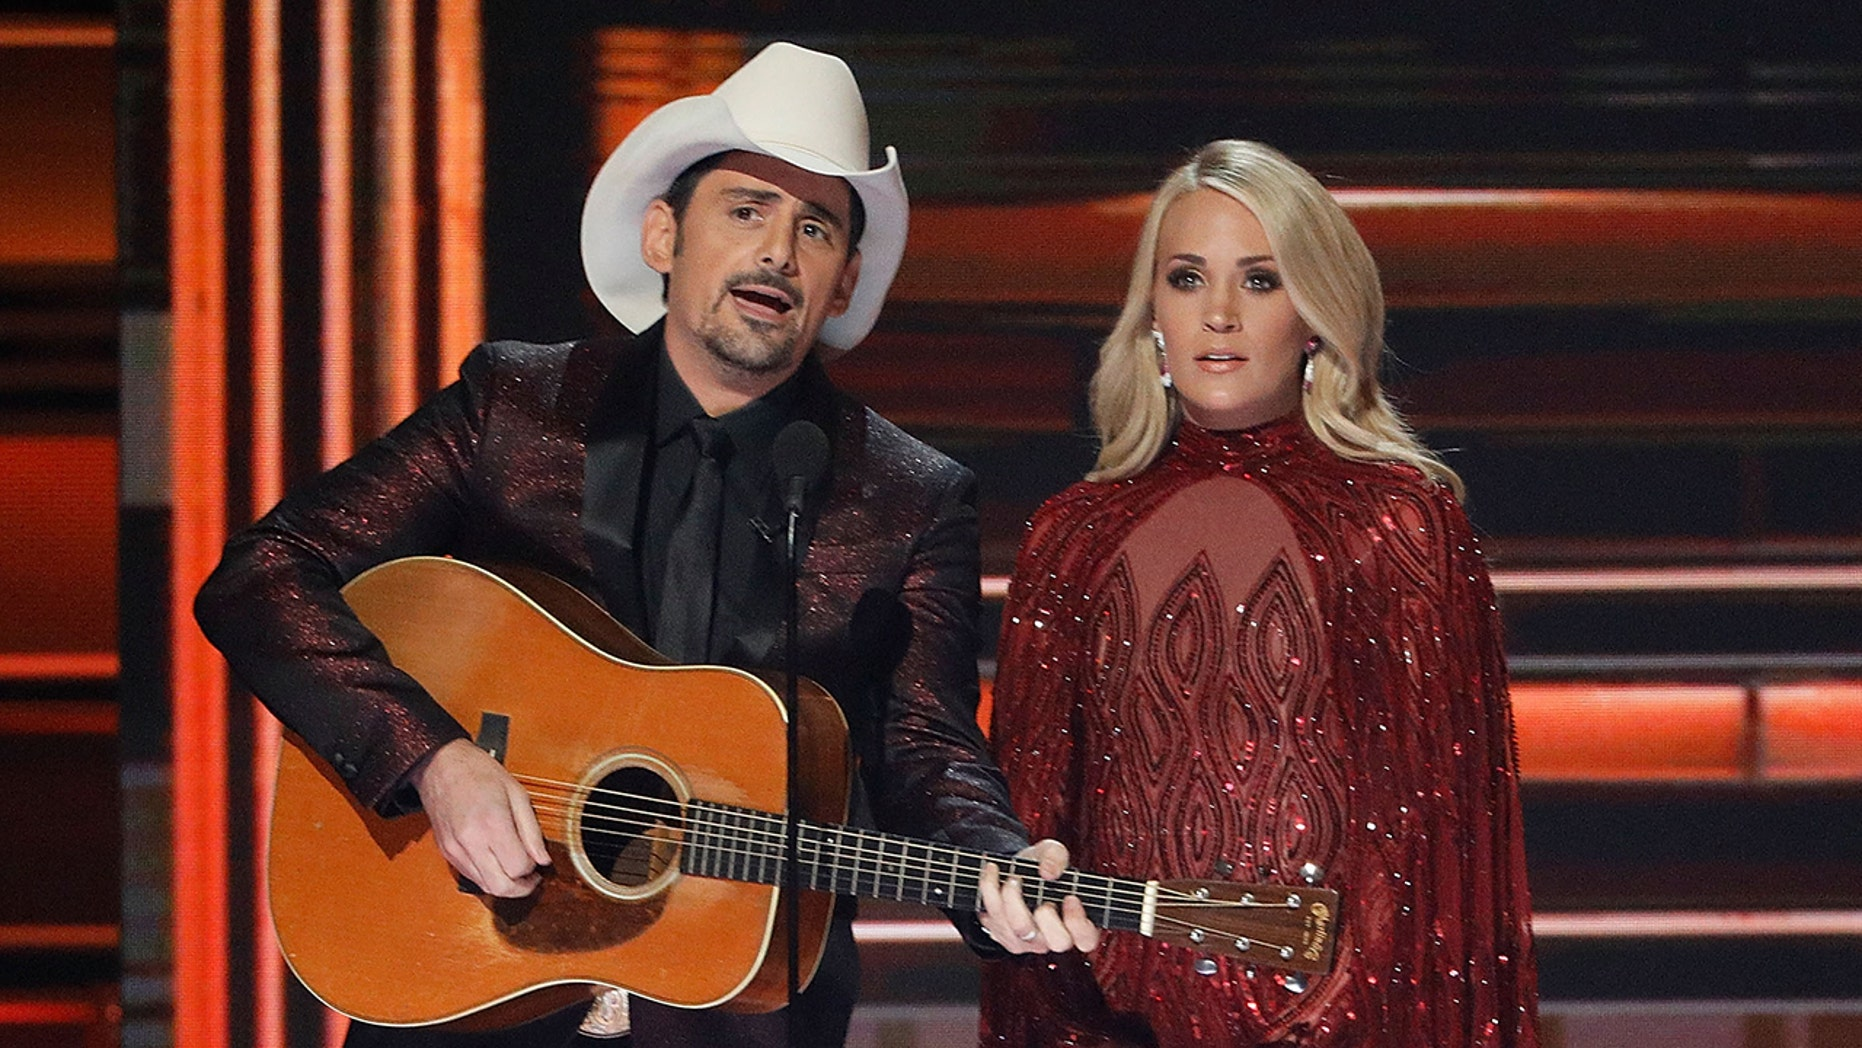 Brad Paisley and Carrie Underwood will host the CMA Awards for the 11th year in a row in November.